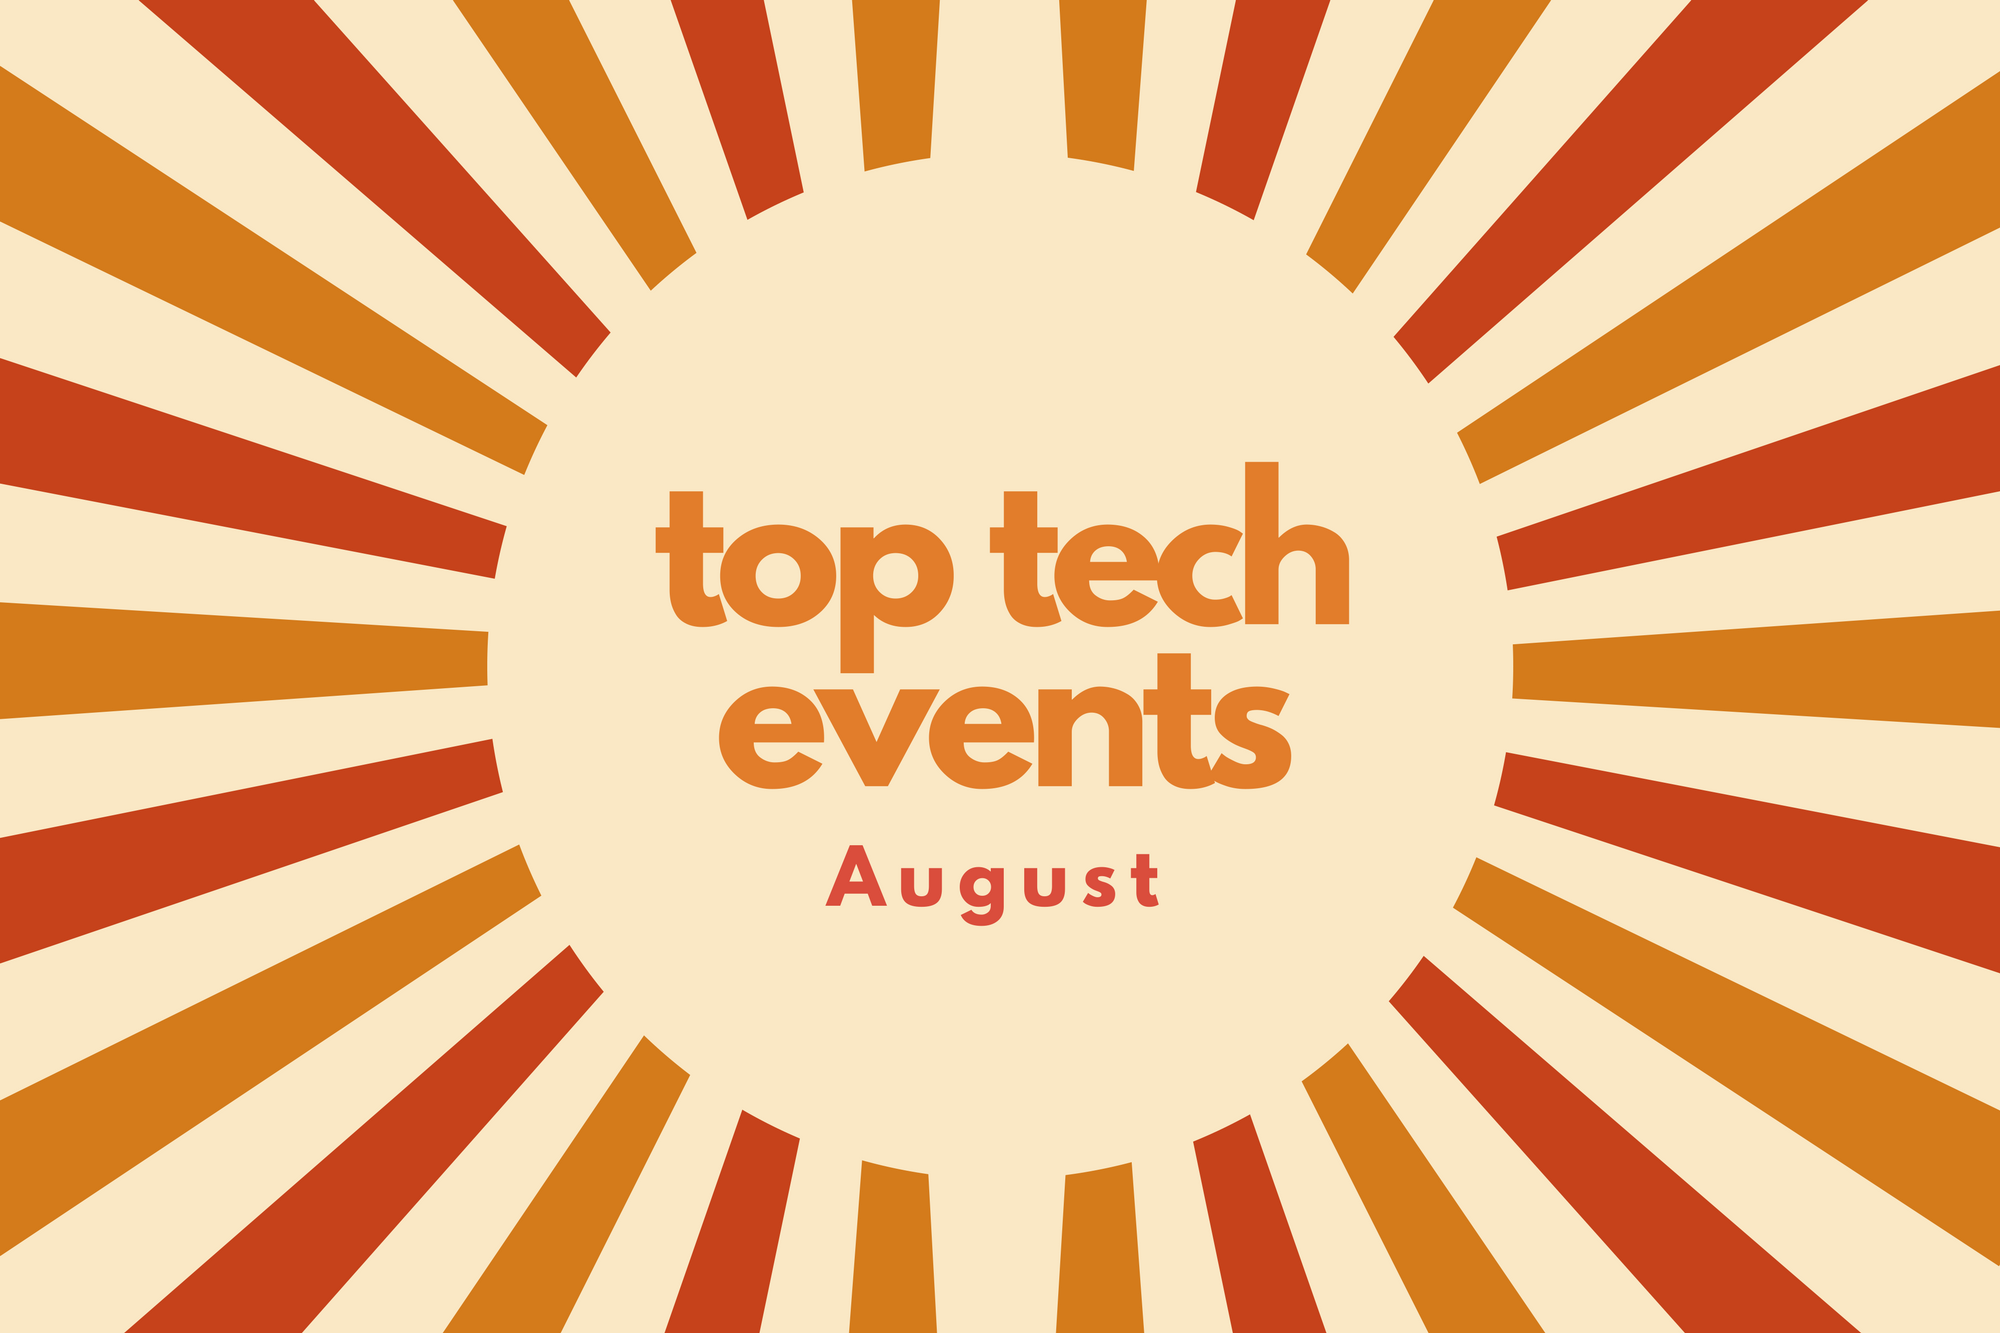 top tech events